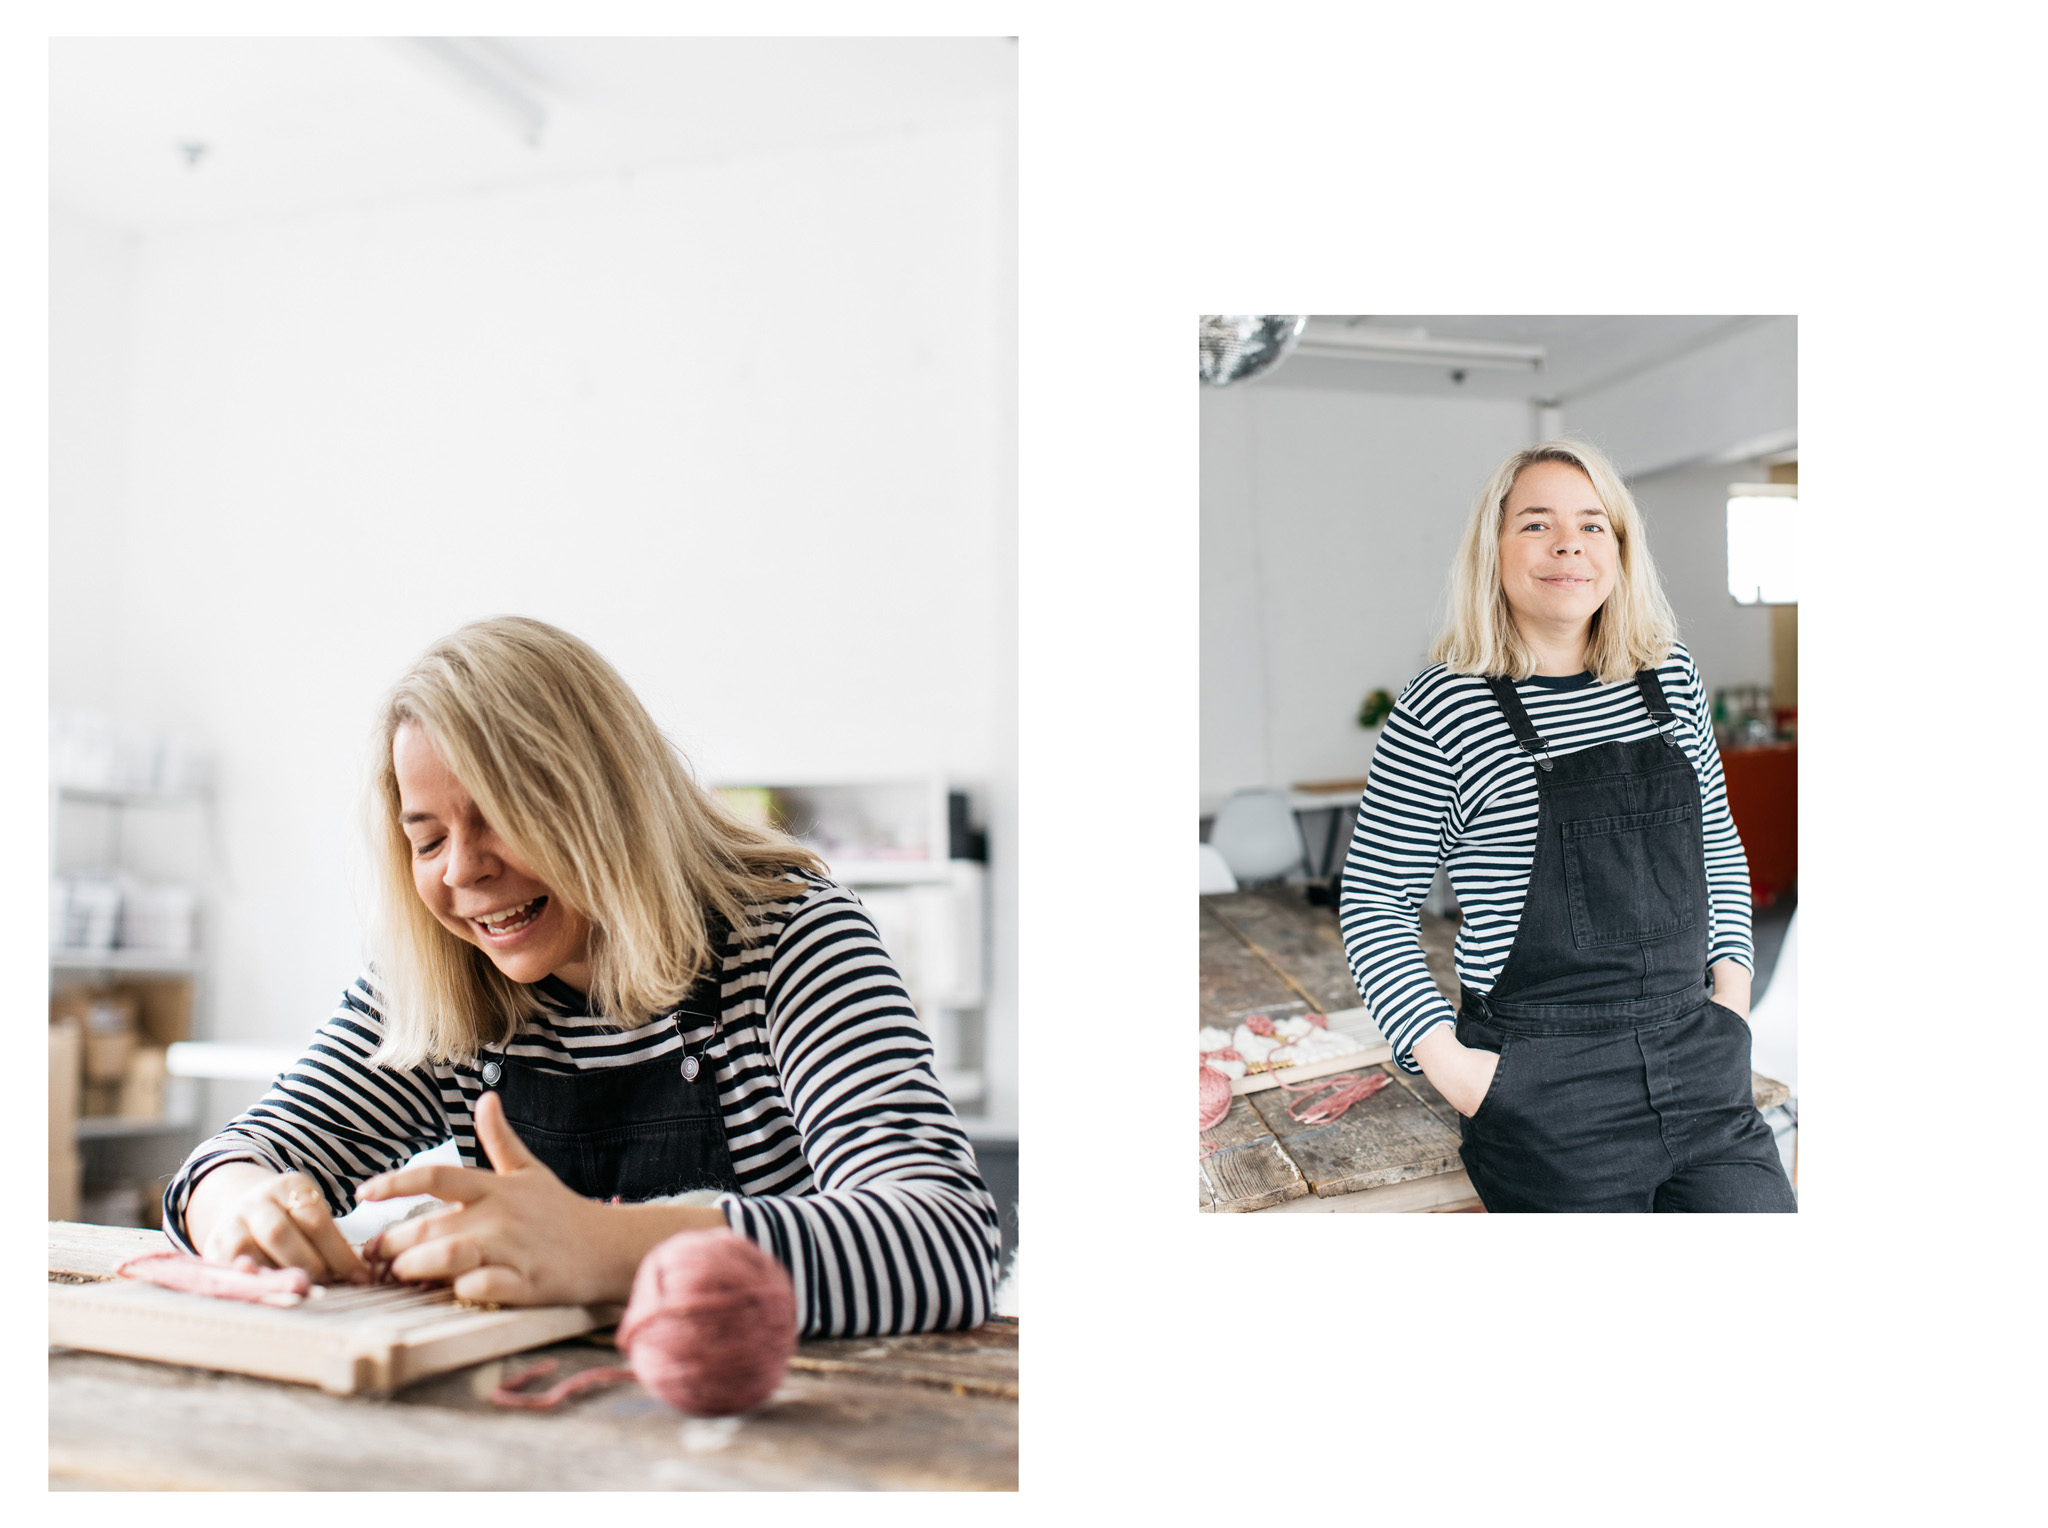 Portraits of Brighton creative Lucy Davidson - owner of Peas and Needles. Lucy is a weaver and teaches weaving workshops Photography by portrait photographer